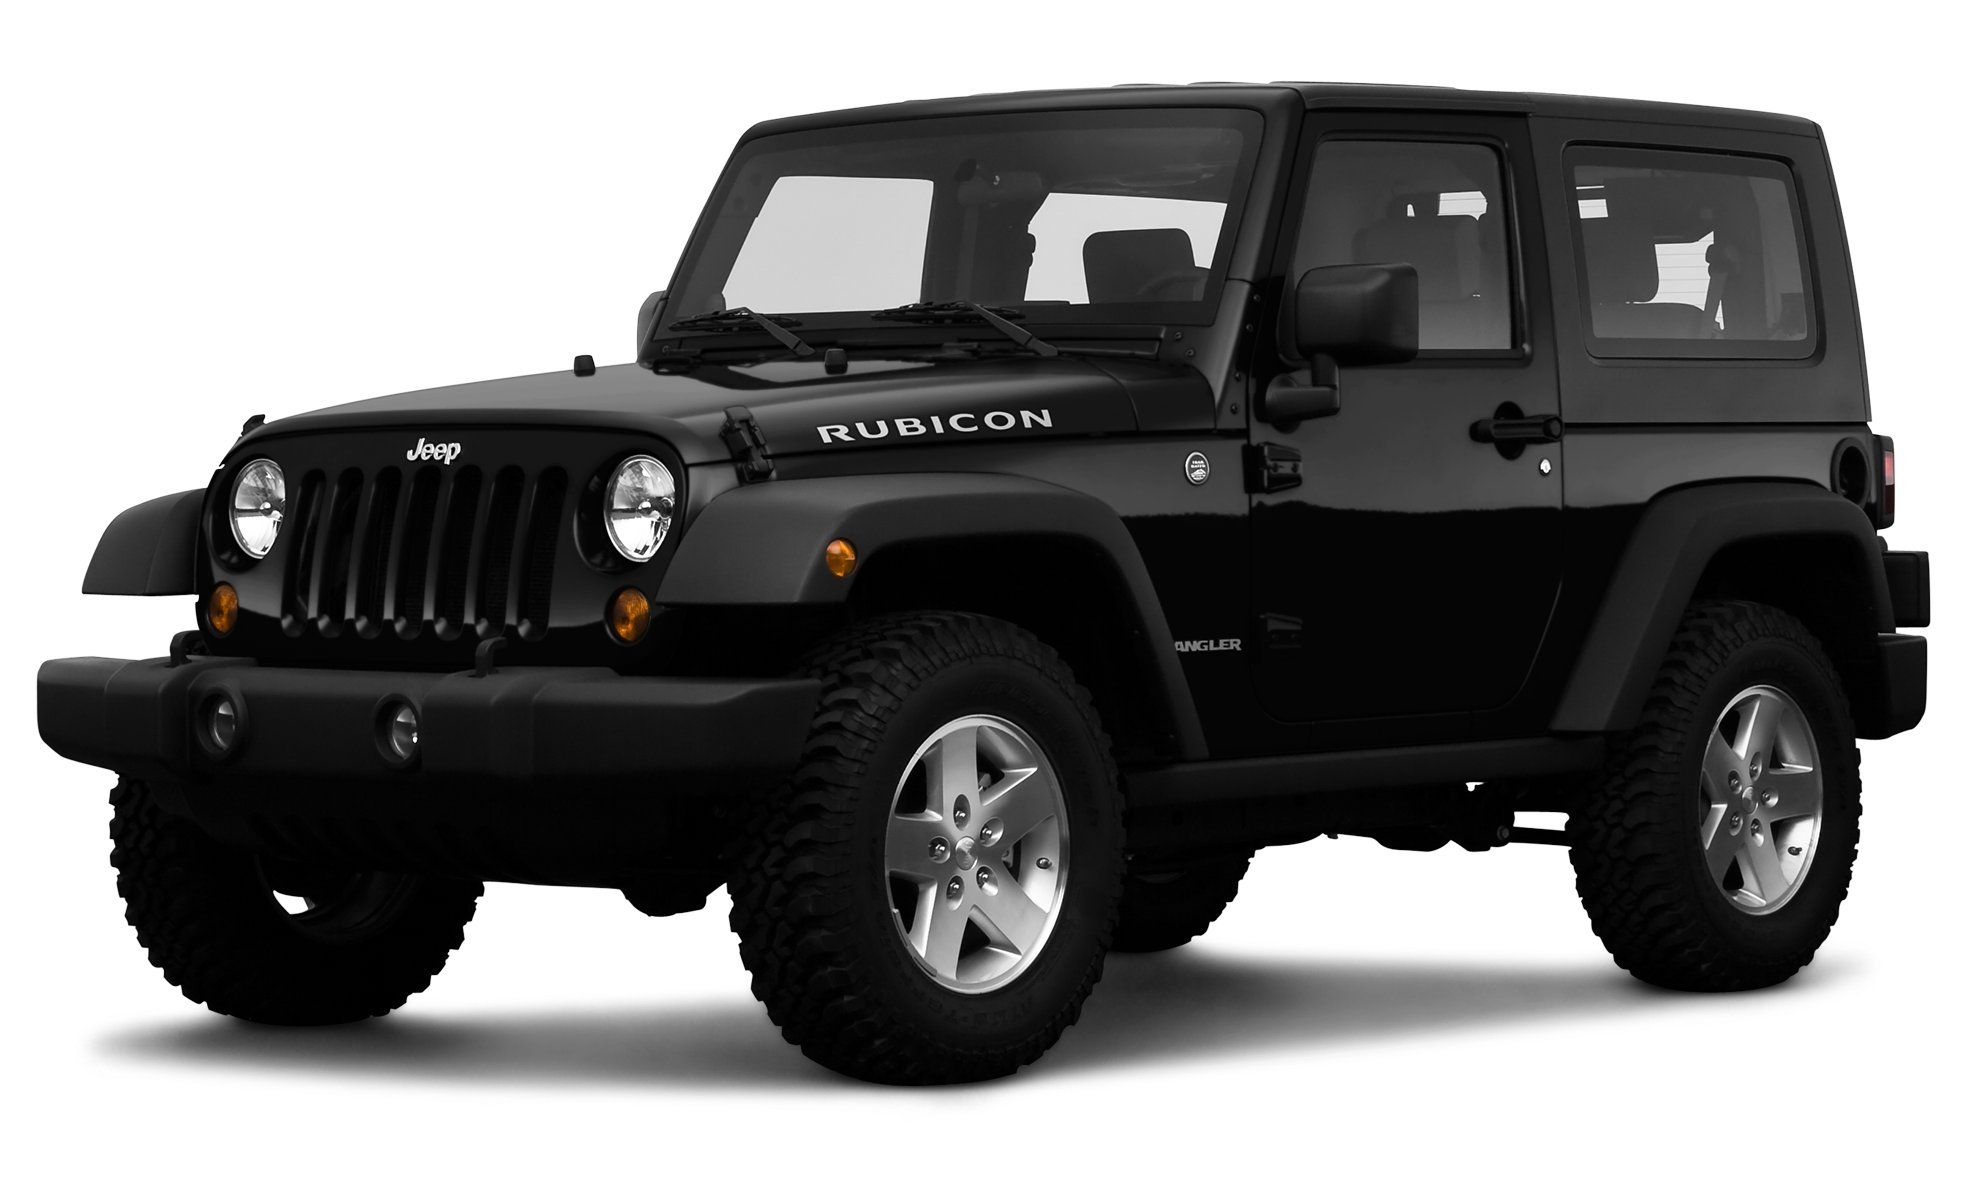 jeep wrangler rubicon 2 door images galleries with a bite. Black Bedroom Furniture Sets. Home Design Ideas